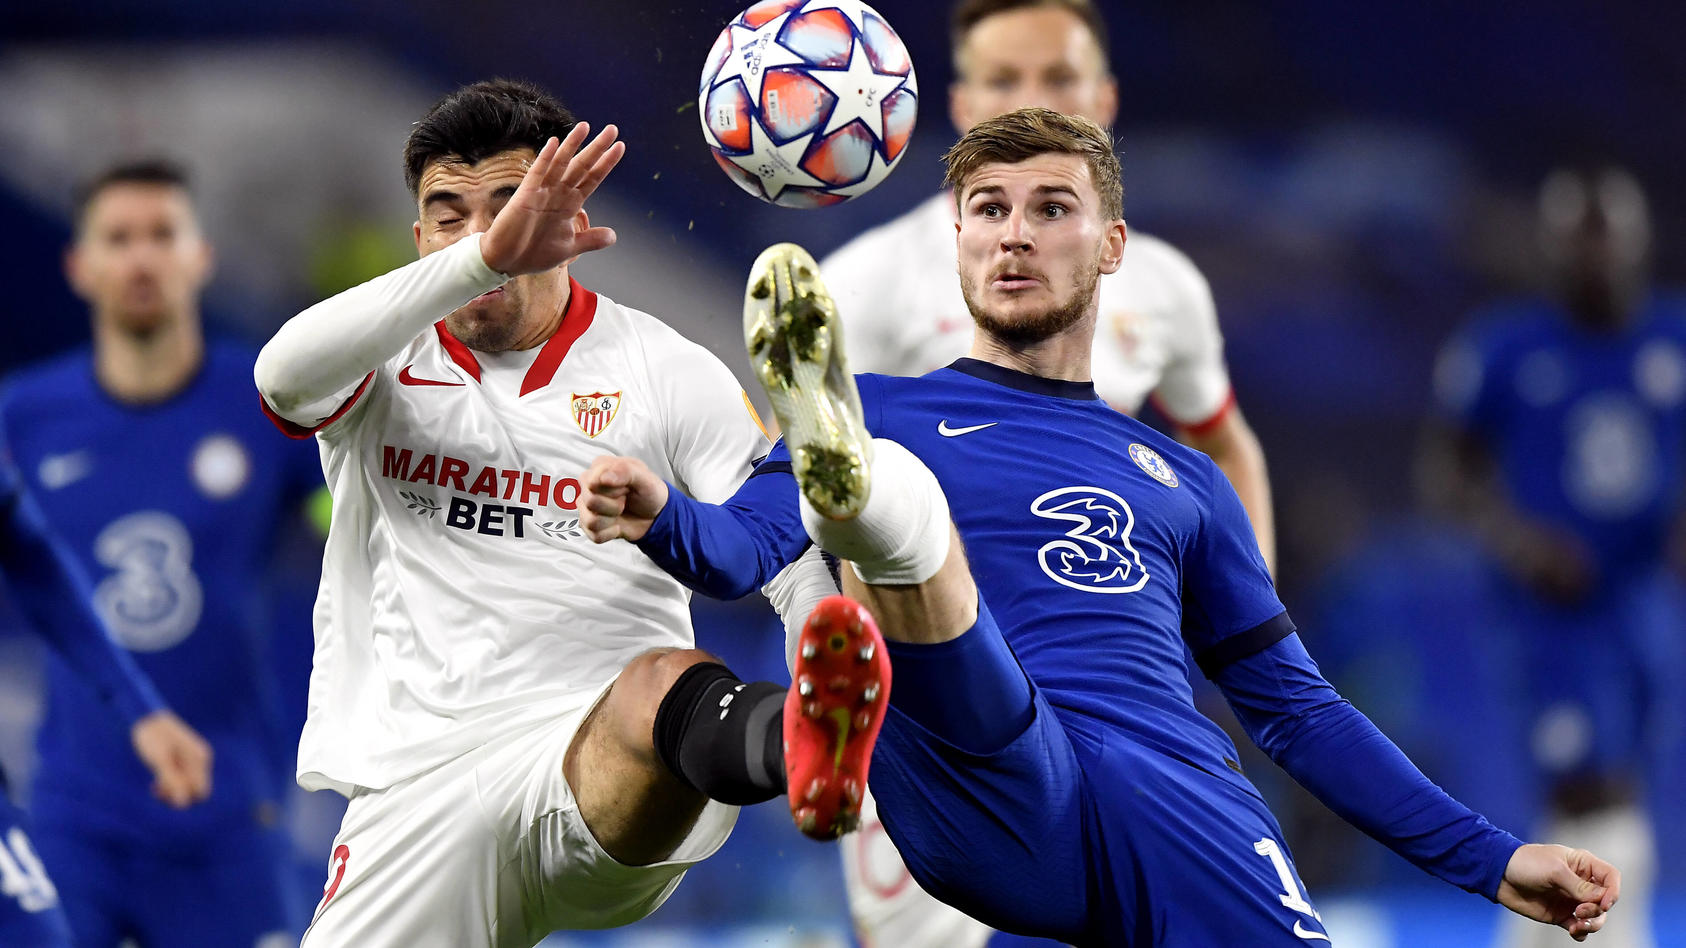 Chelsea v Sevilla - UEFA Champions League - Group E - Stamford Bridge Sevilla s Marcos Acuna (left) and Chelsea s Timo